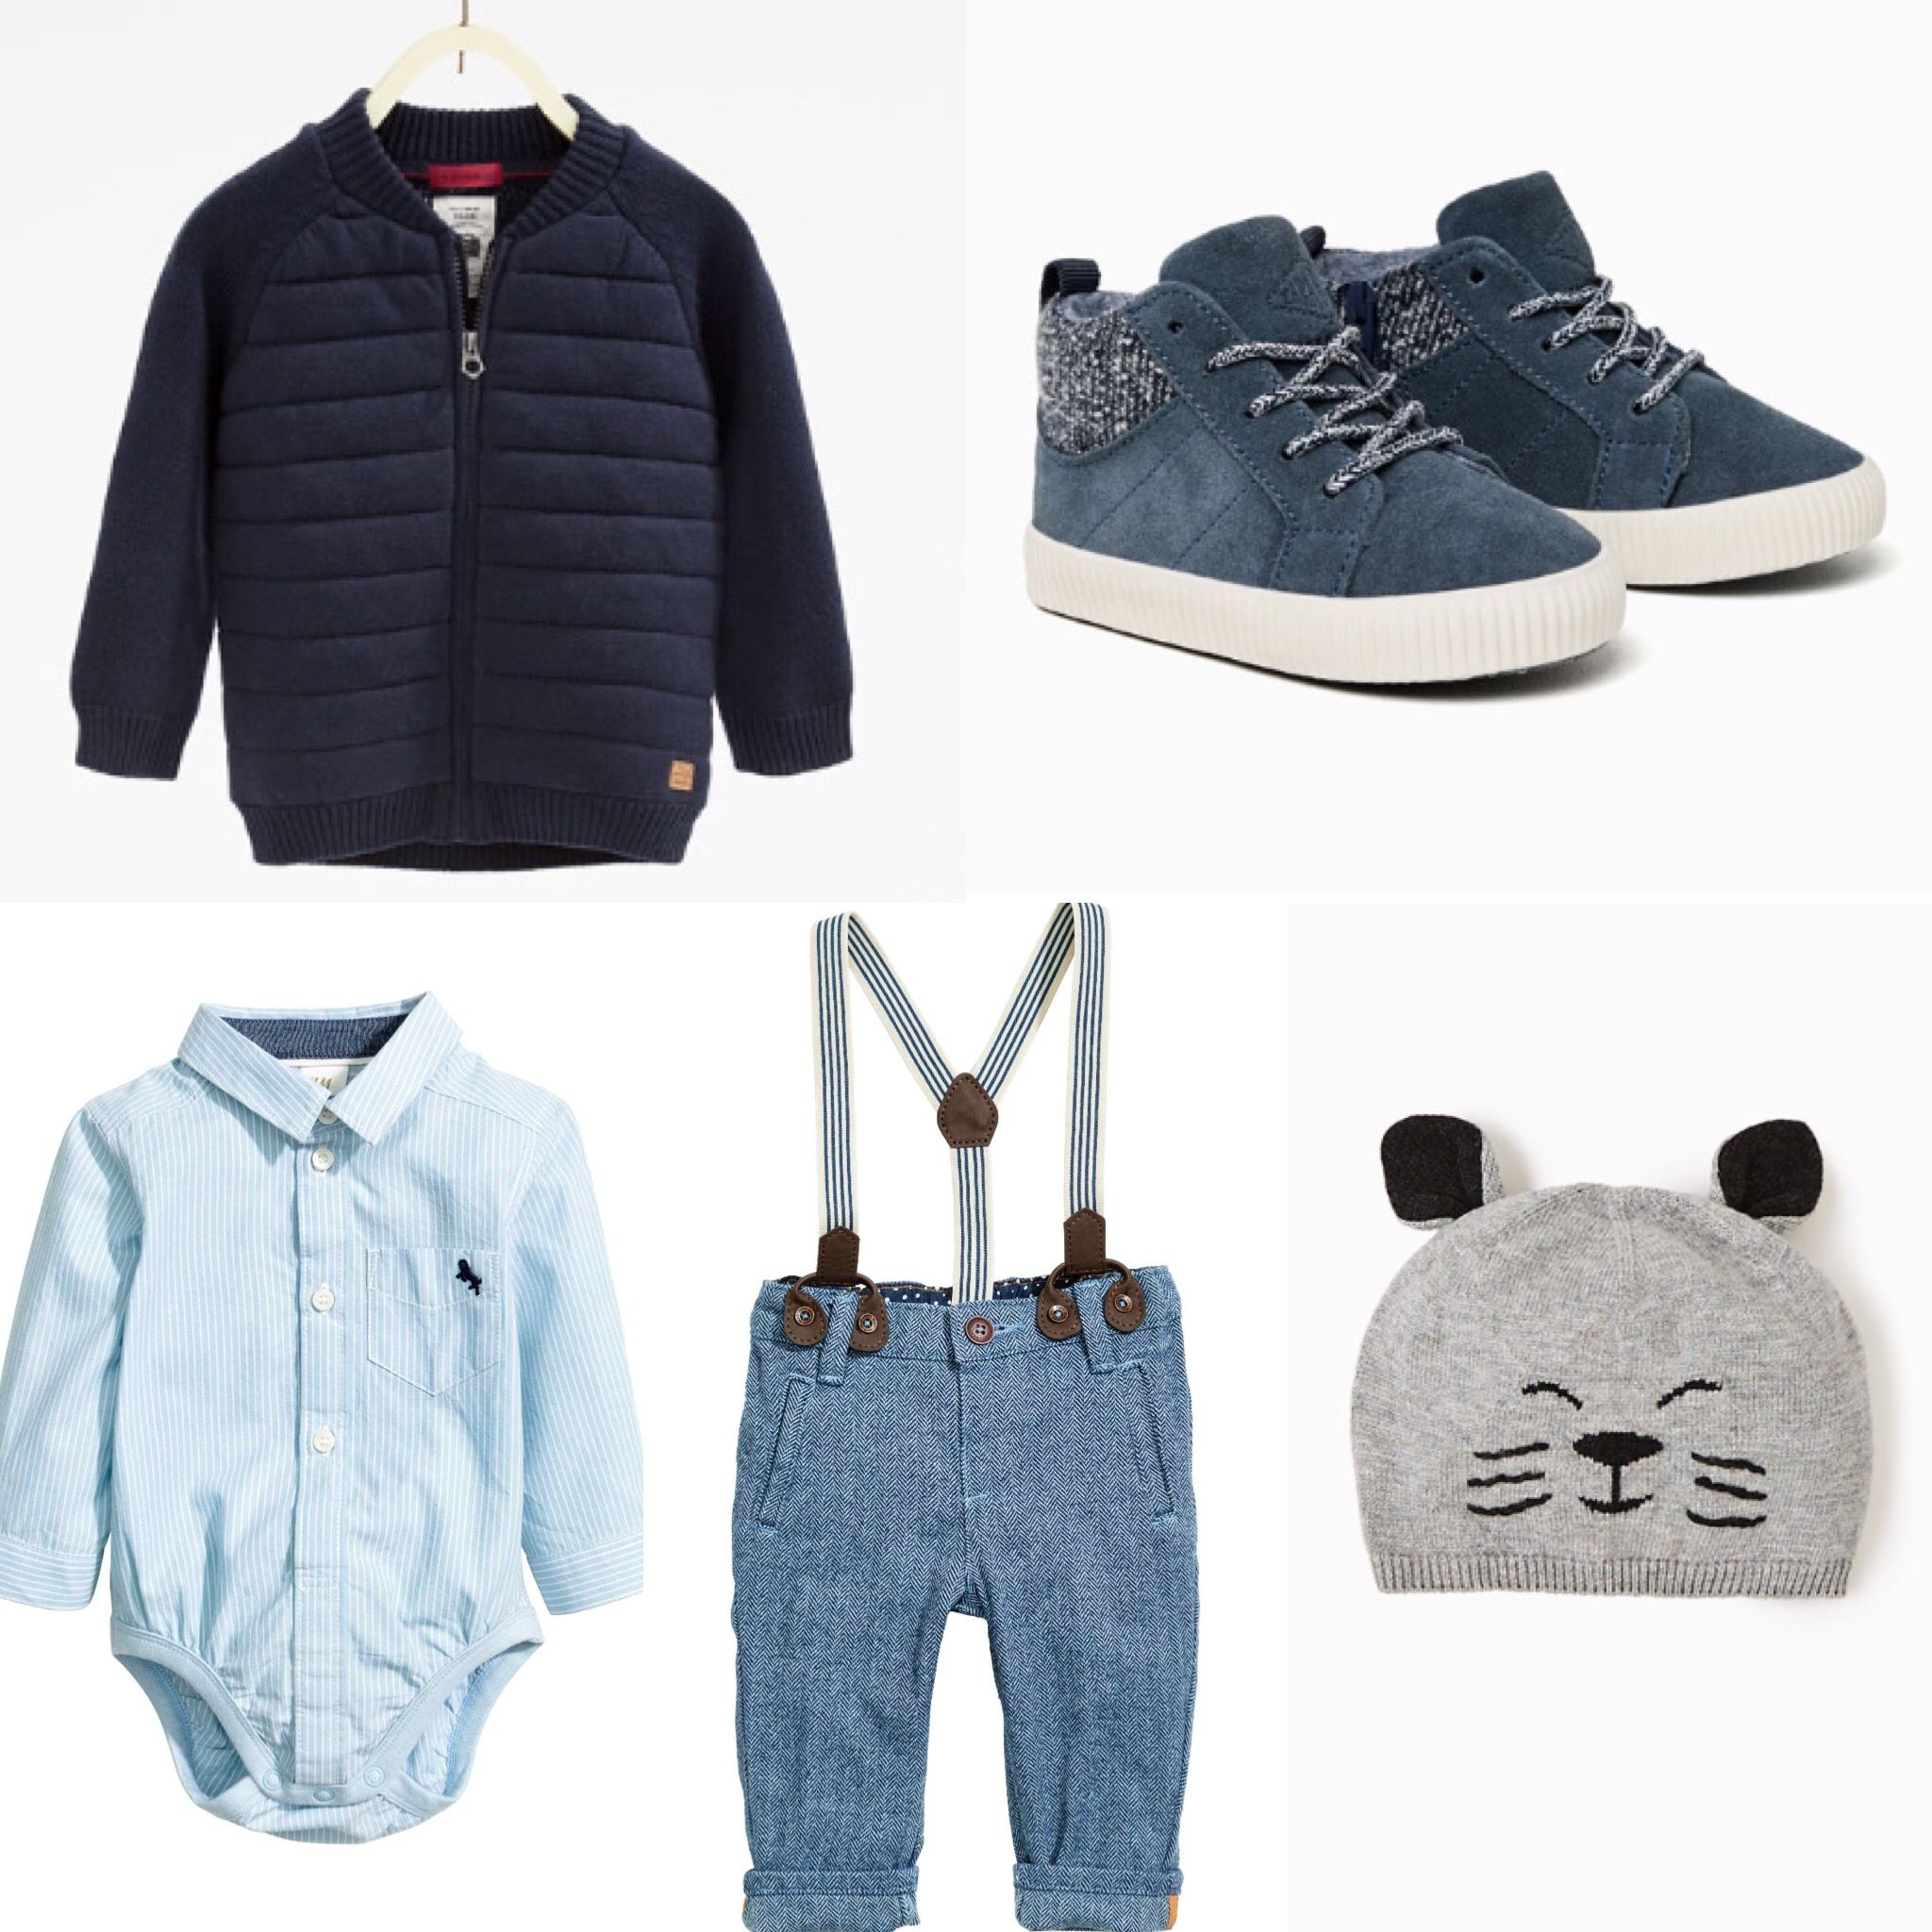 dc601eae2d6c Baby boy outfit idea. H M trousers and body. Zara jacket